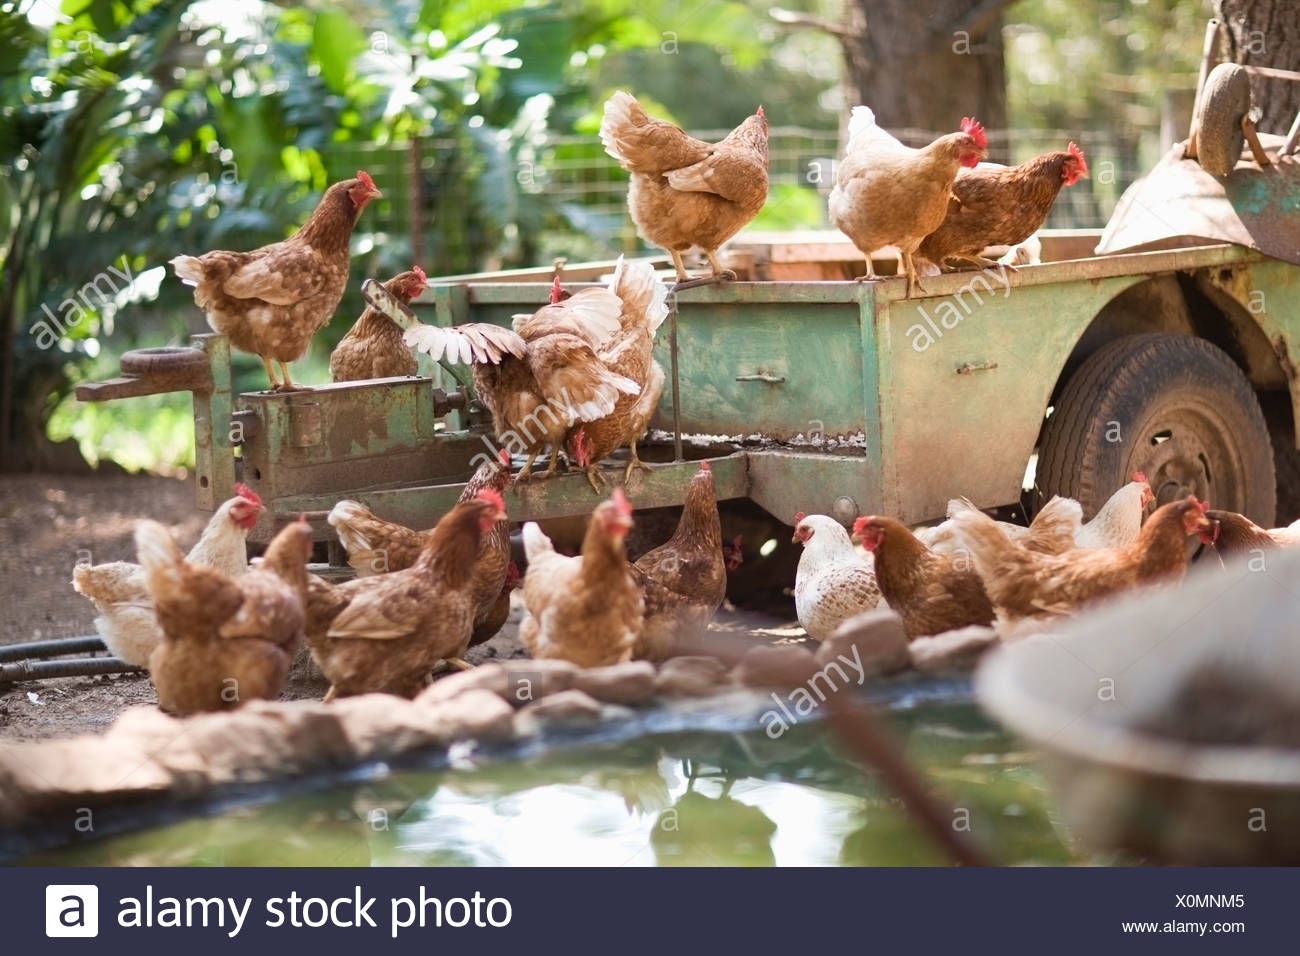 Chickens on truck in barnyard - Stock Image